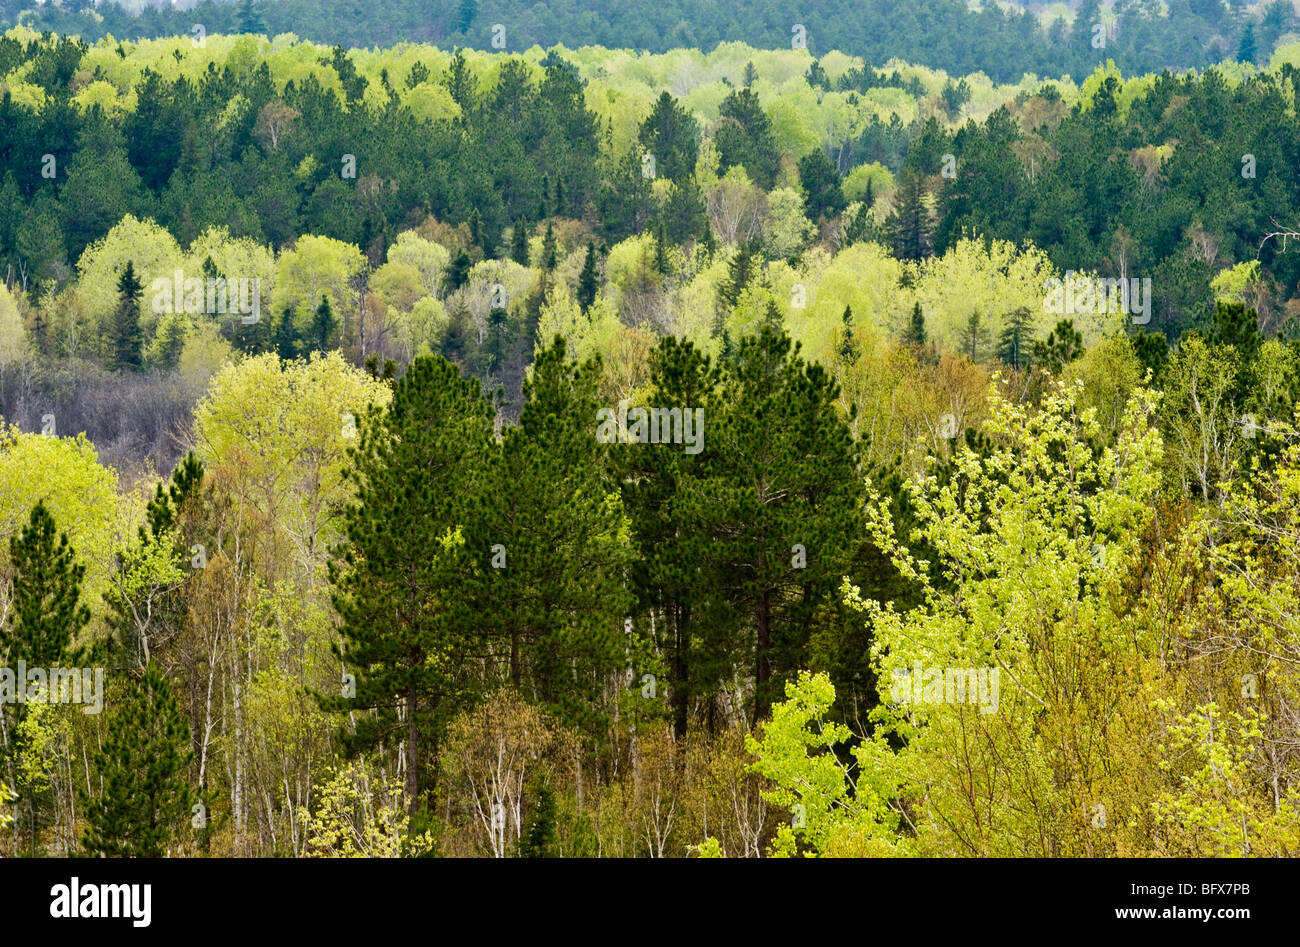 Fresh foliage in aspens with spruce and pine trees in valley from high viewpoint, Greater Sudbury, Ontario, Canada - Stock Image